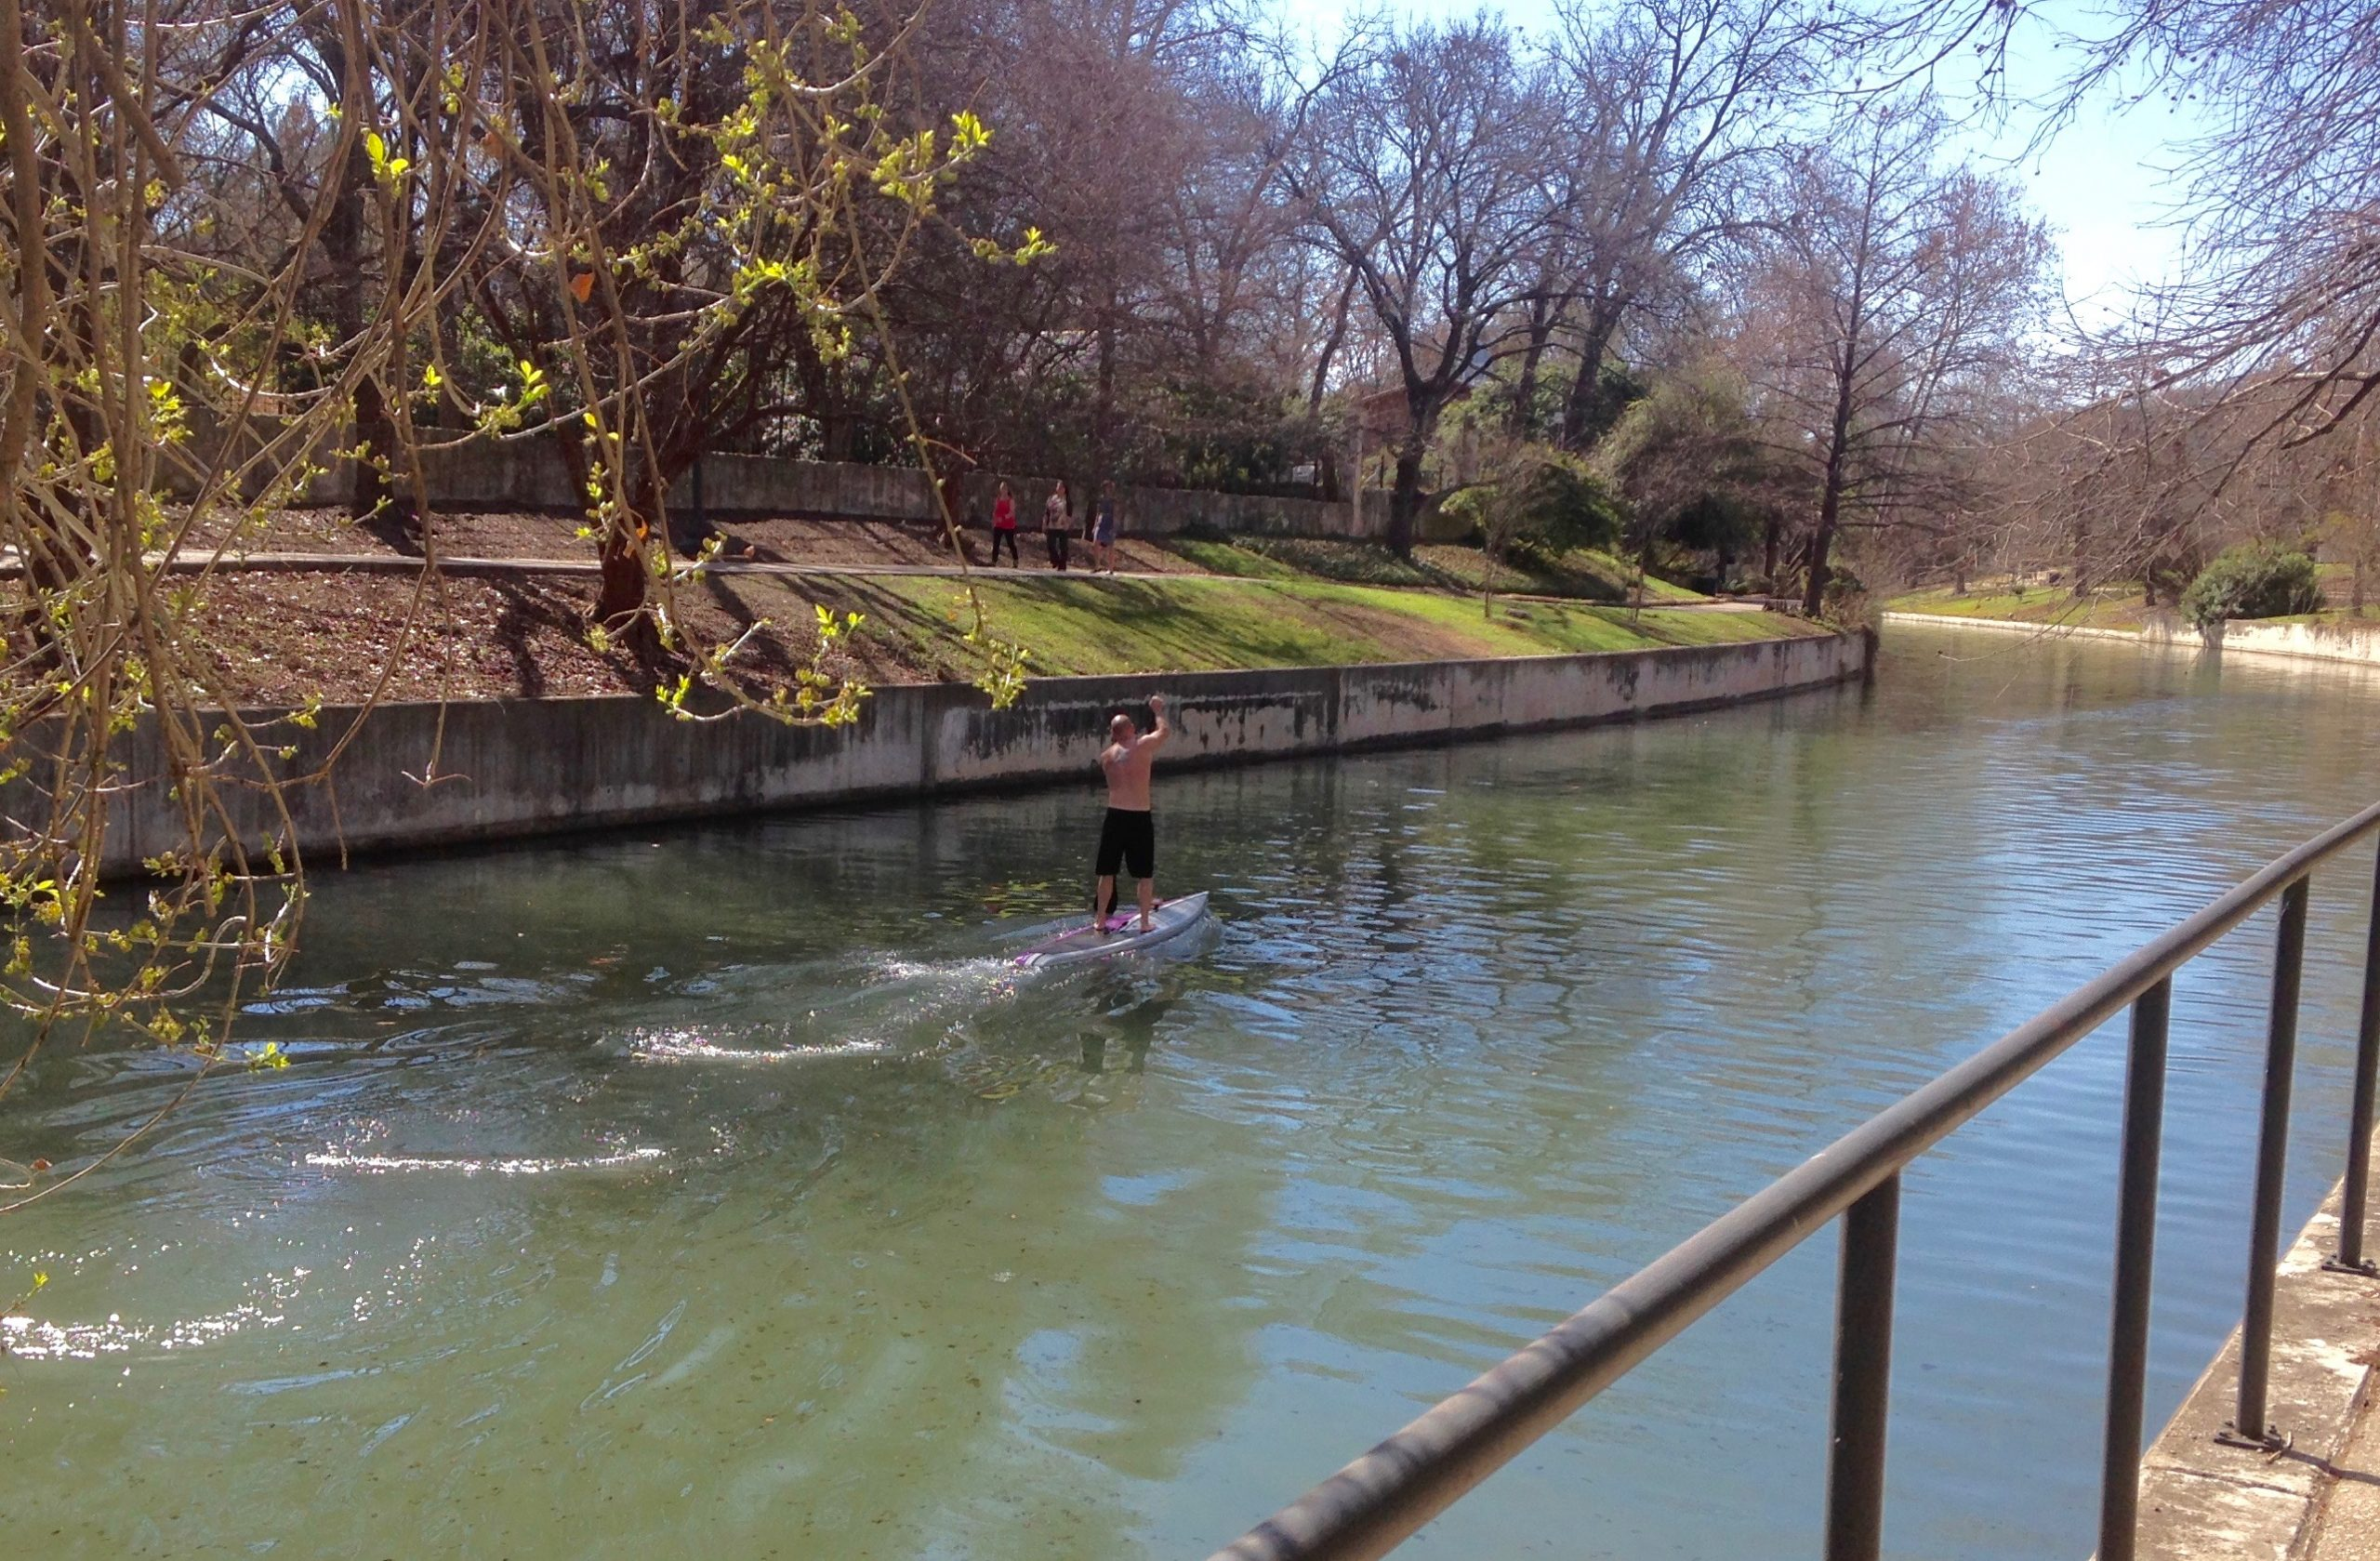 stand-up paddle boarding on the south channel